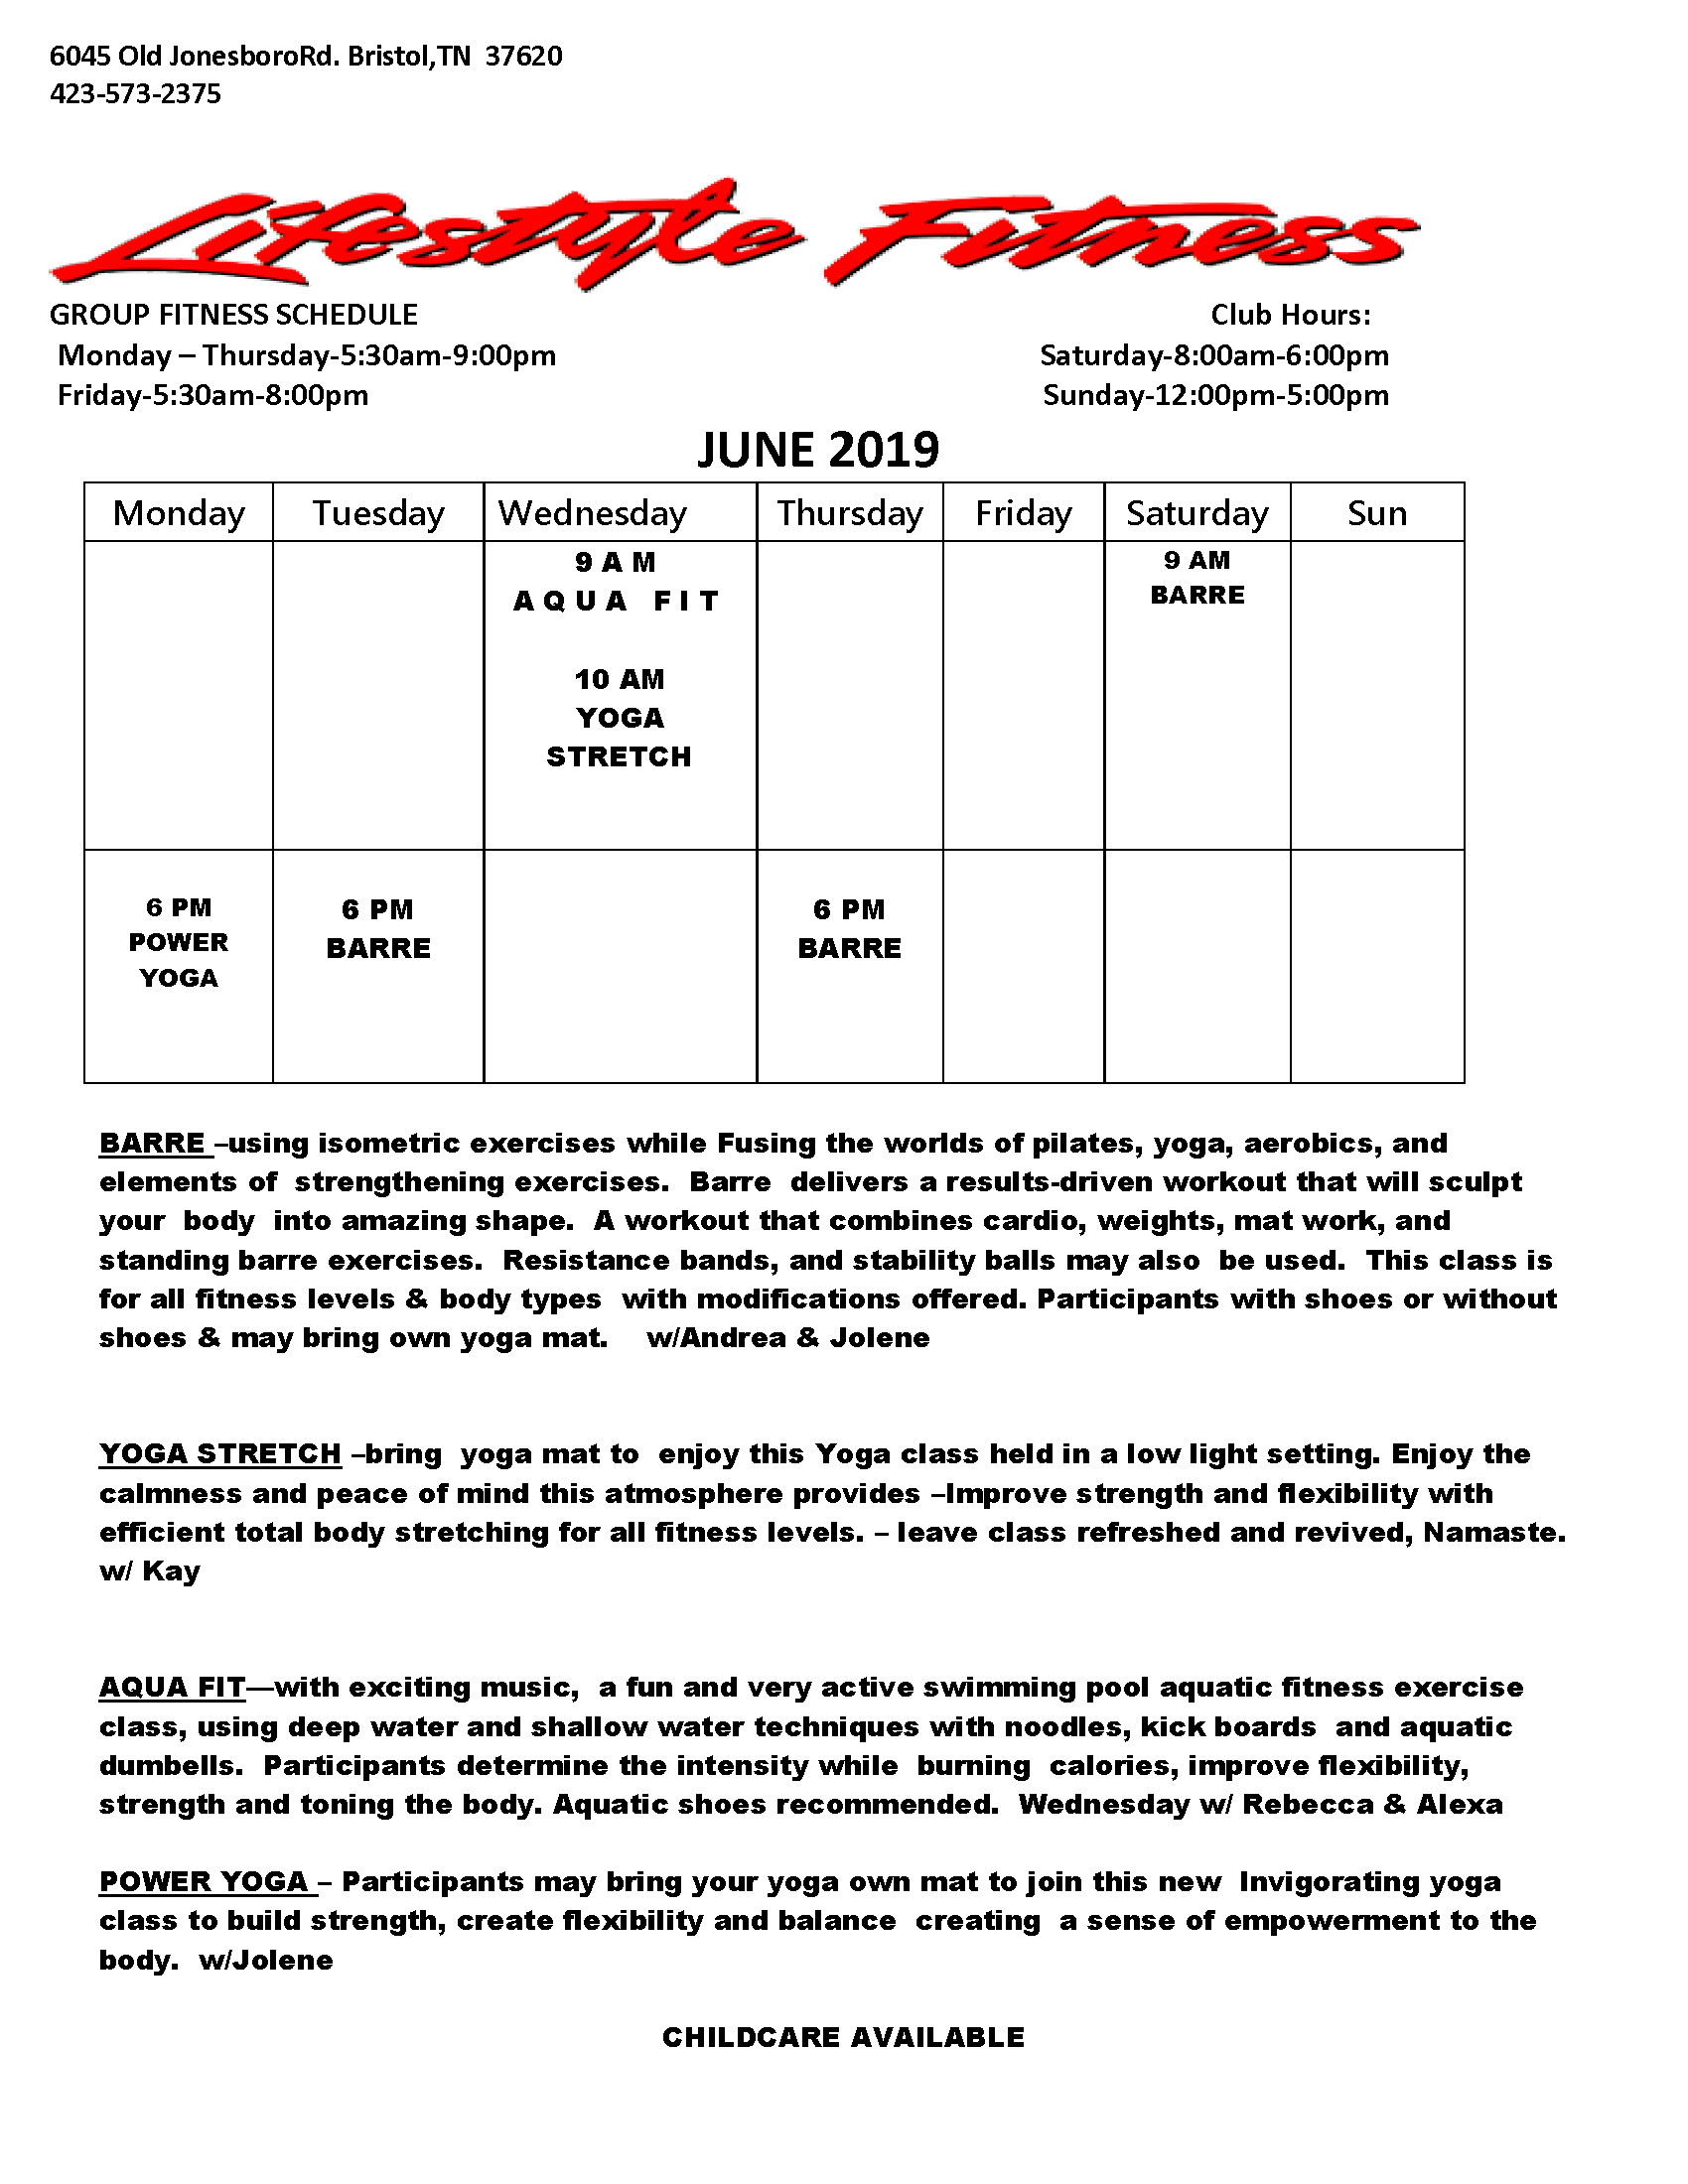 Group Fitness Schedule June 2019 A1_Page_1